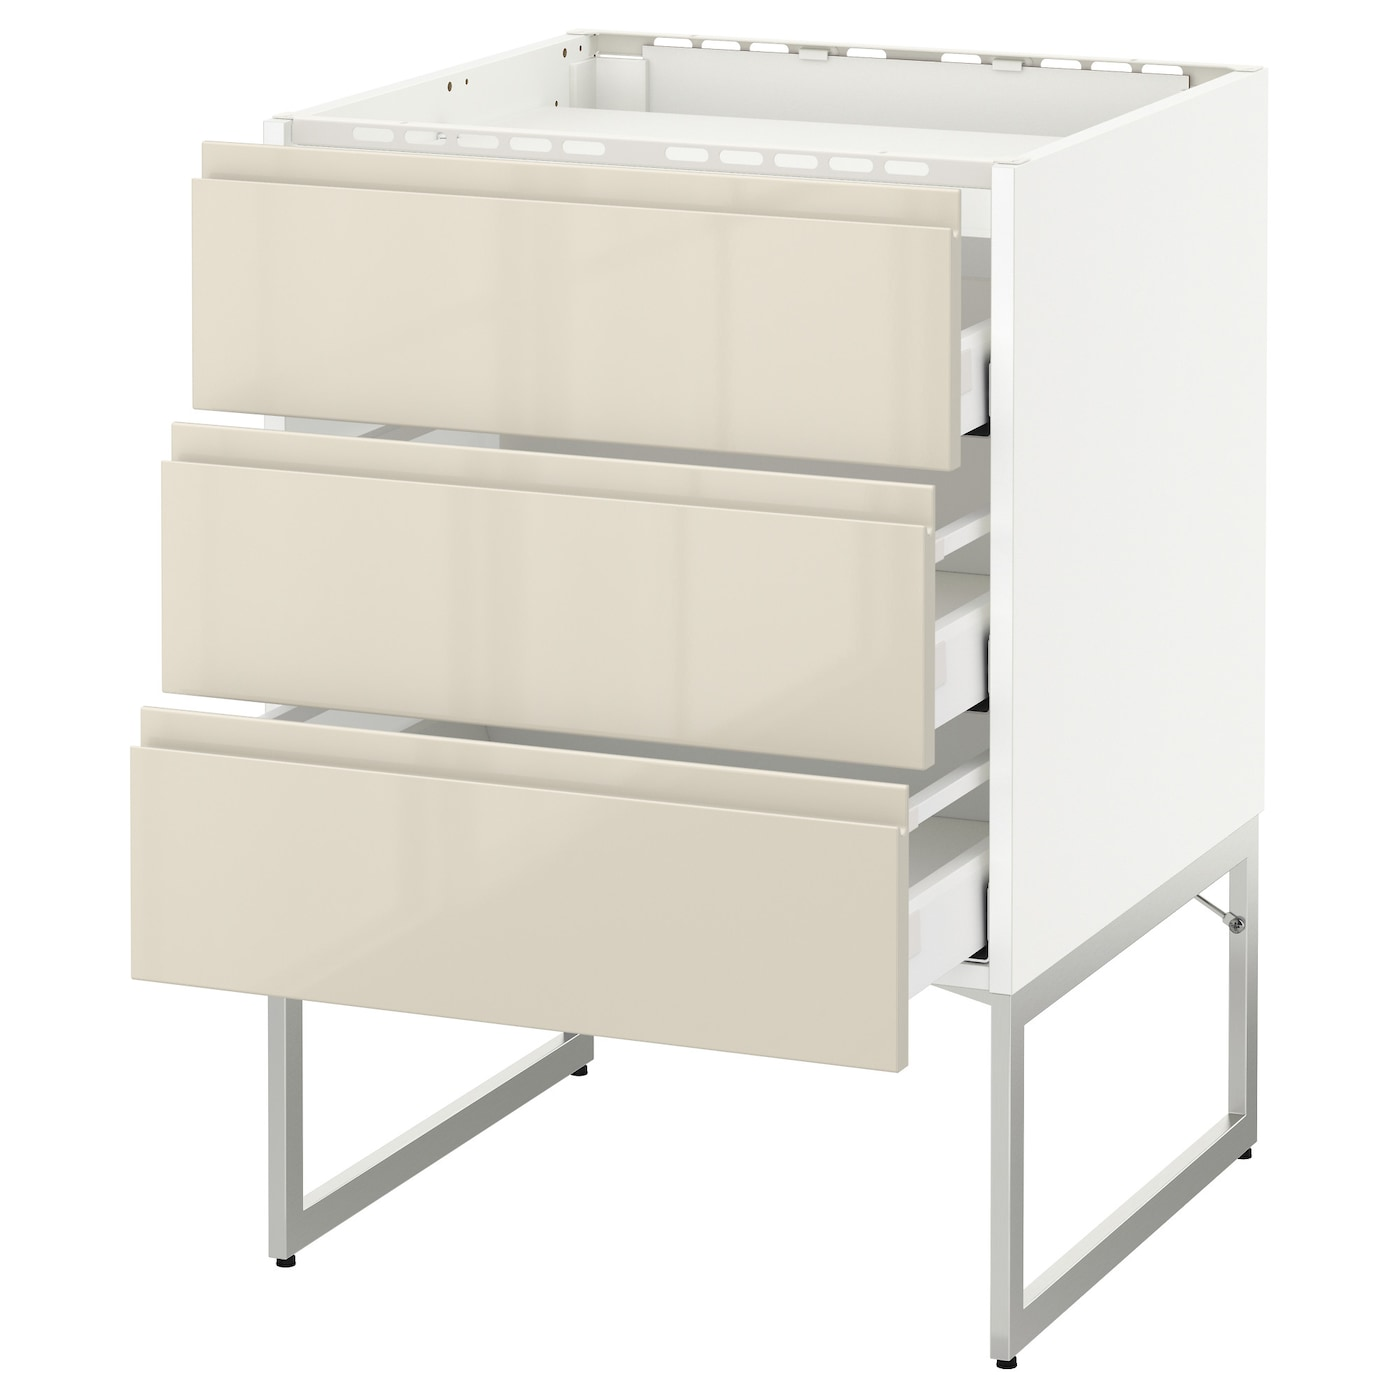 IKEA METOD/MAXIMERA base cab f hob/3 fronts/3 drawers Smooth-running drawers with stop.